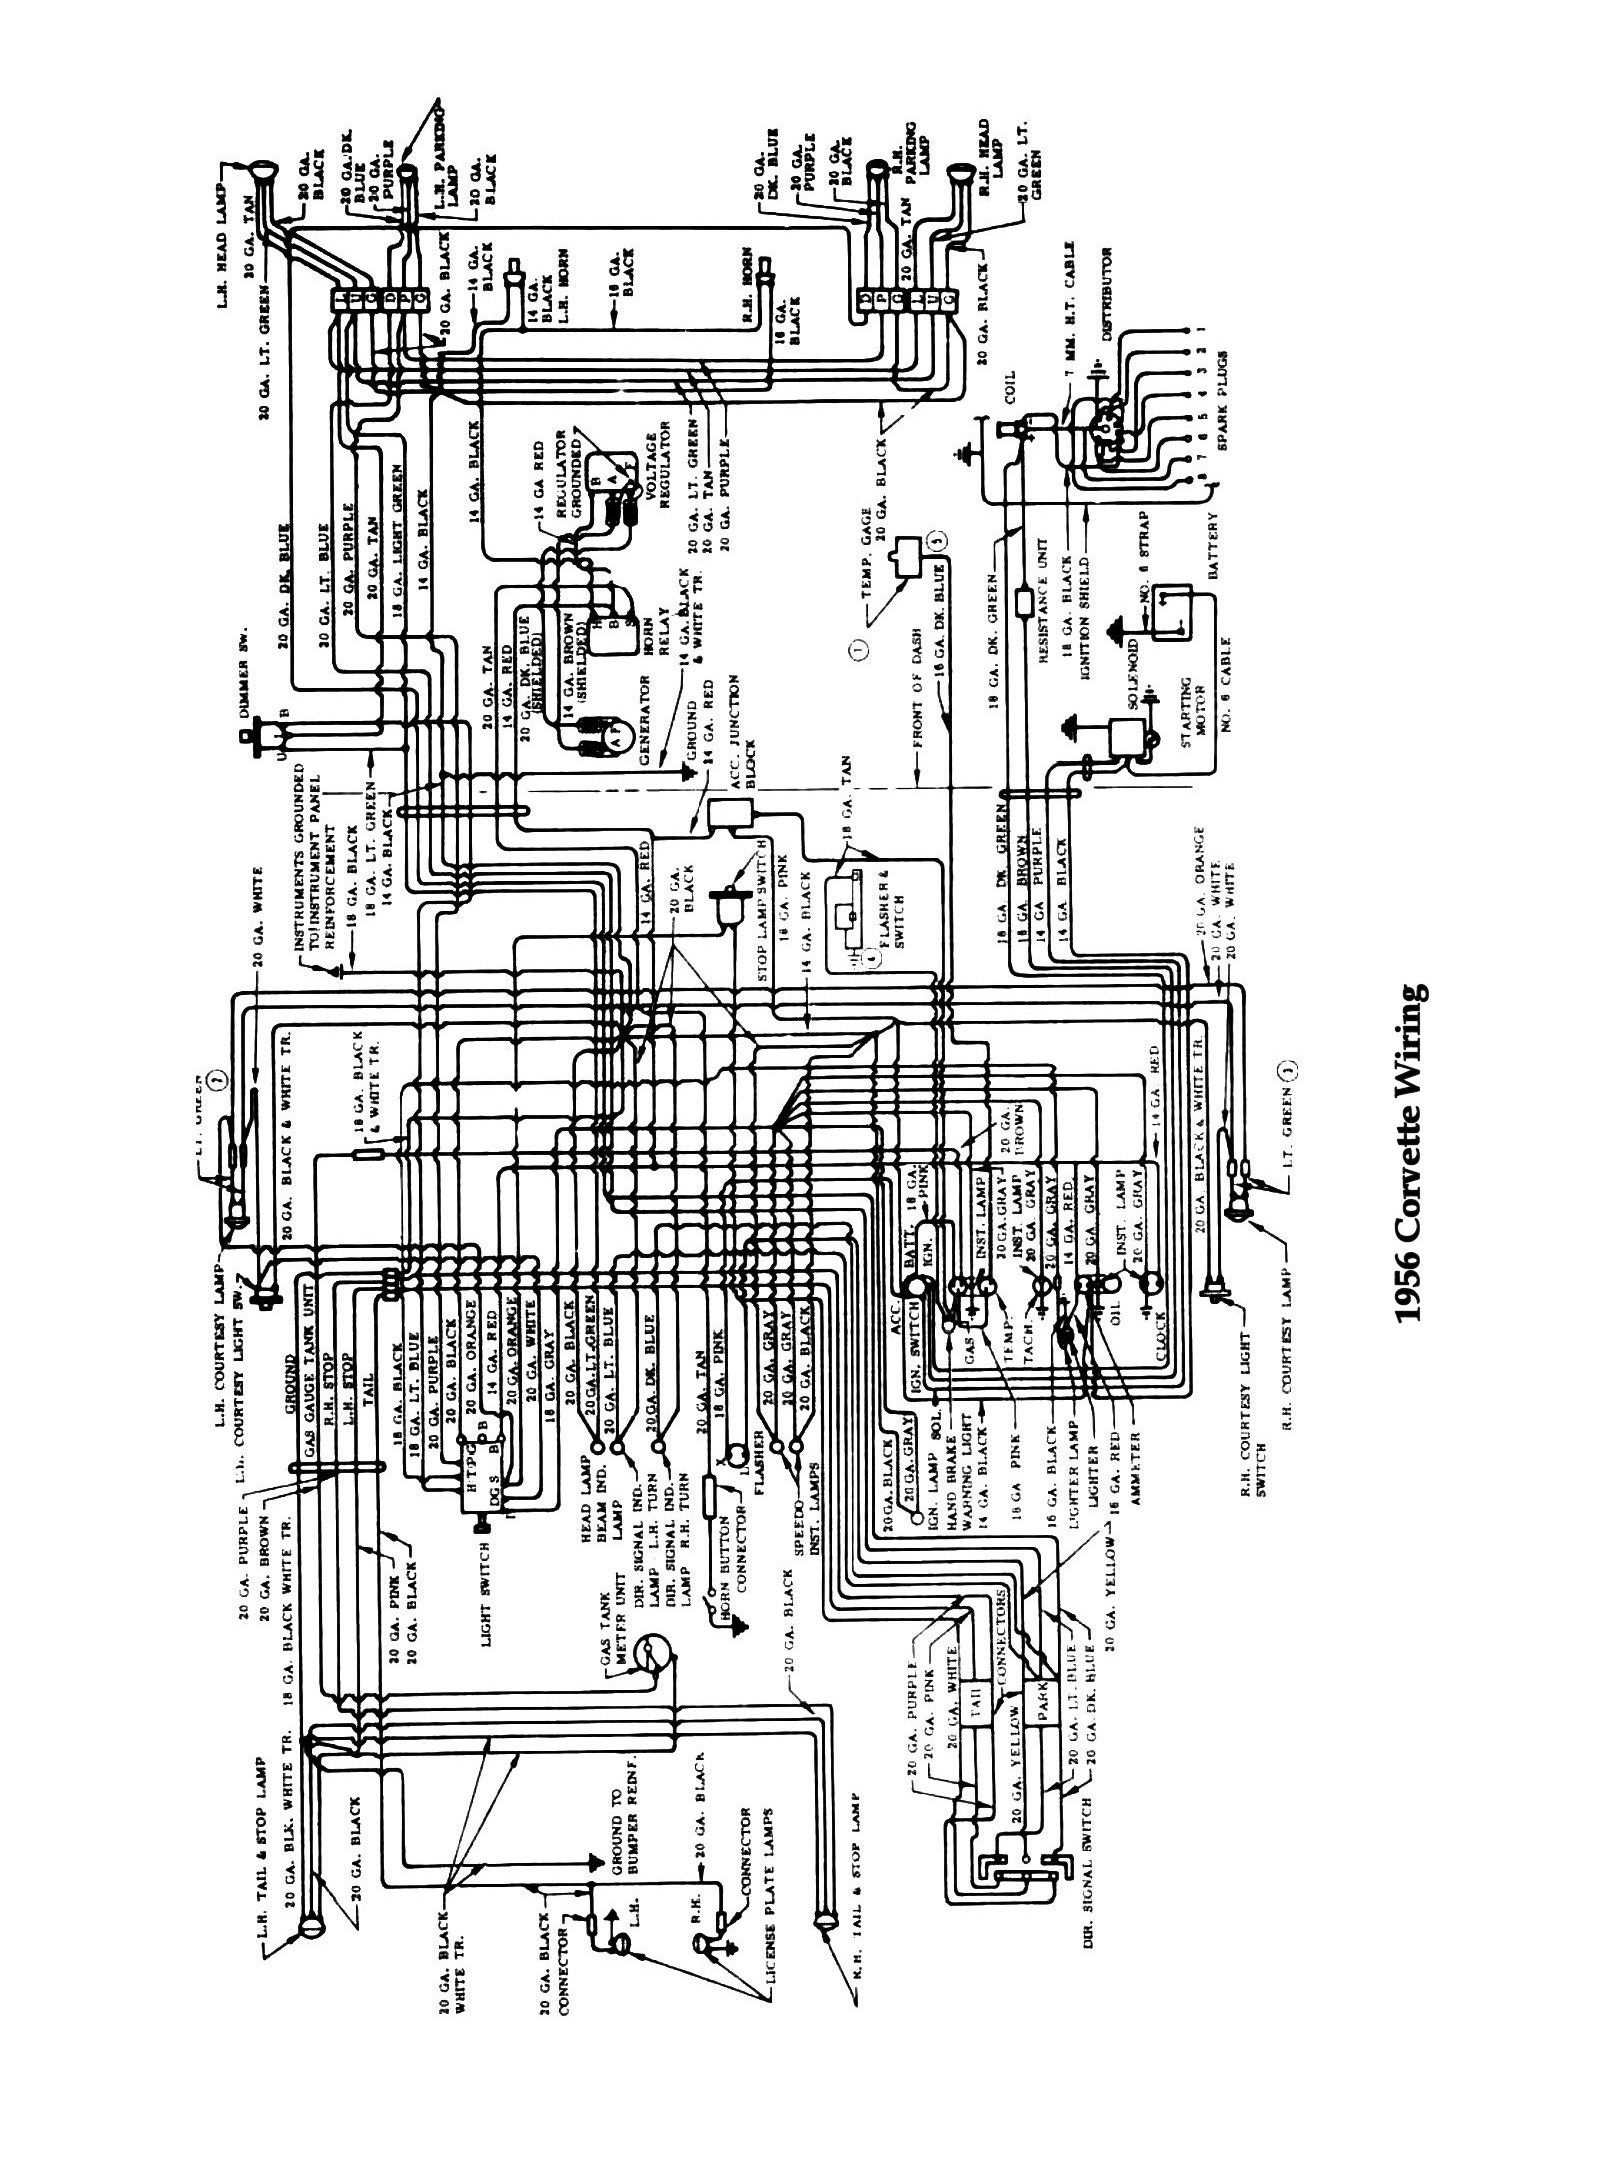 1959 cadillac wiring harness   28 wiring diagram images